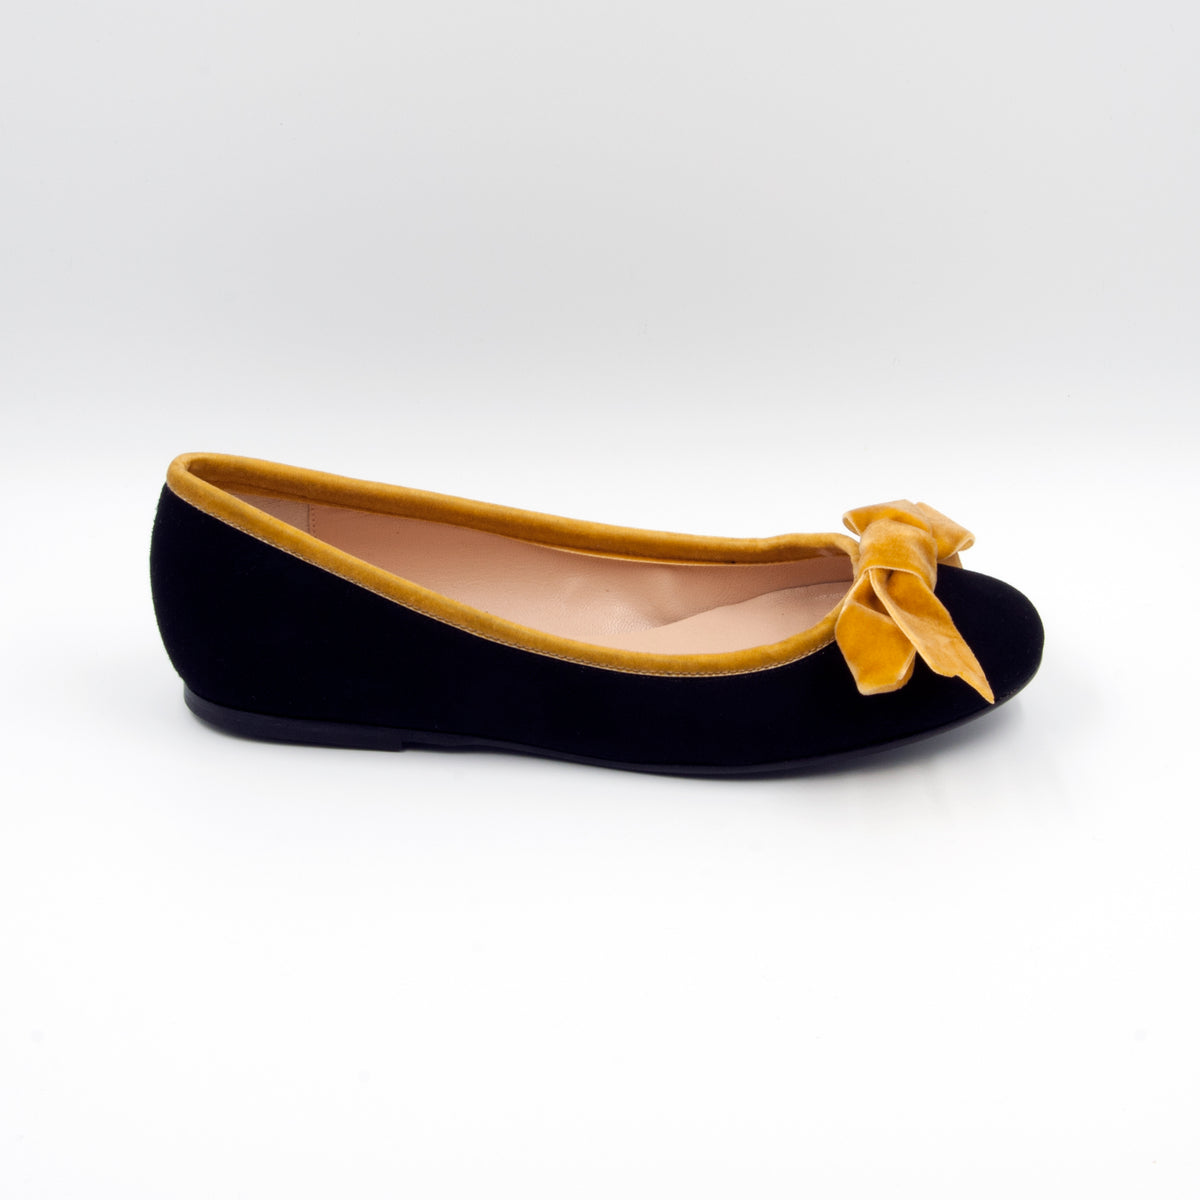 LolaDomecq black hand made ballerina with a touch of gold velvet